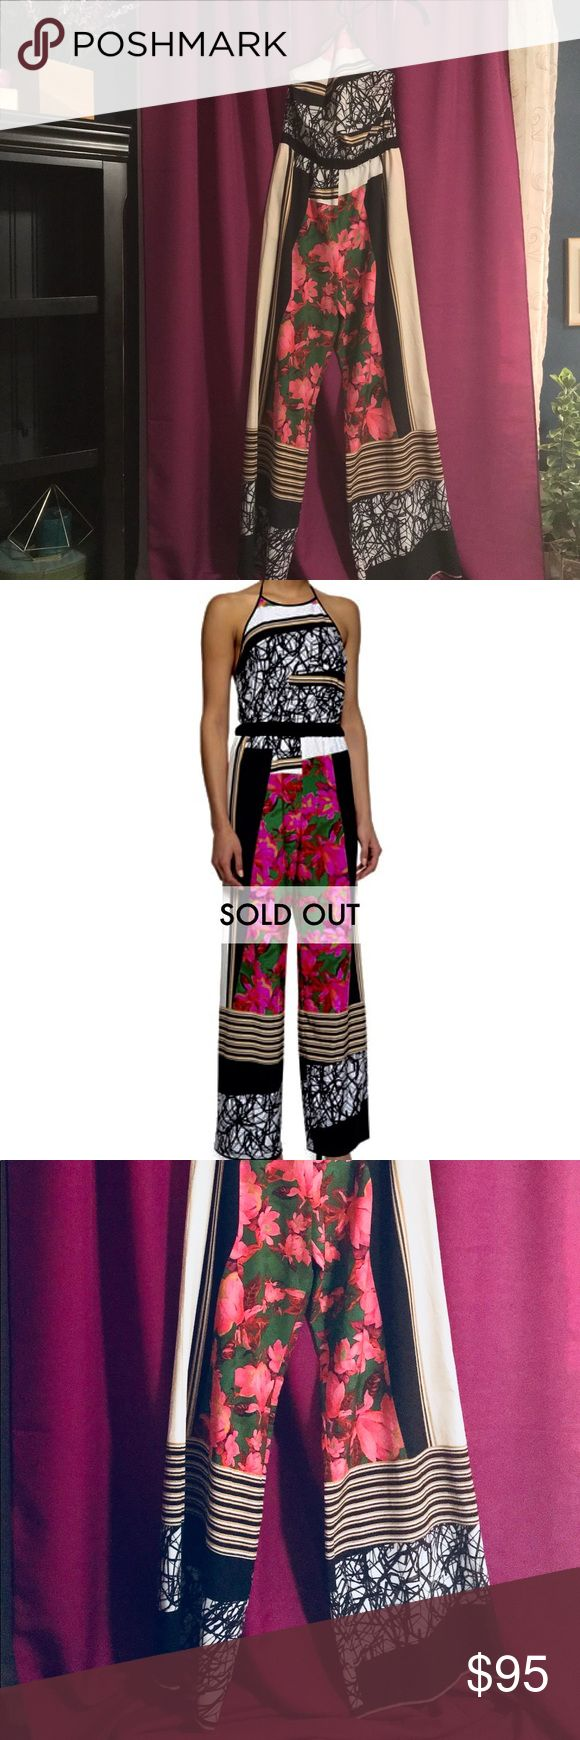 Clover Canyon Mixed Print Halter Jumpsuit Clover Canyon mixed-print jumpsuit Size 2/Small   Wore one time for 1/2 hour.  nieman Marcus carries this brand but has sold out of this item/ it didn't fit my small bustline but is such a gorgeous item!!!!   Halter neckline with back tie. Sleeveless. Elasticized waist. Wide legs. Relaxed silhouette. Polyester/spandex. Clover Canyon Pants Jumpsuits & Rompers